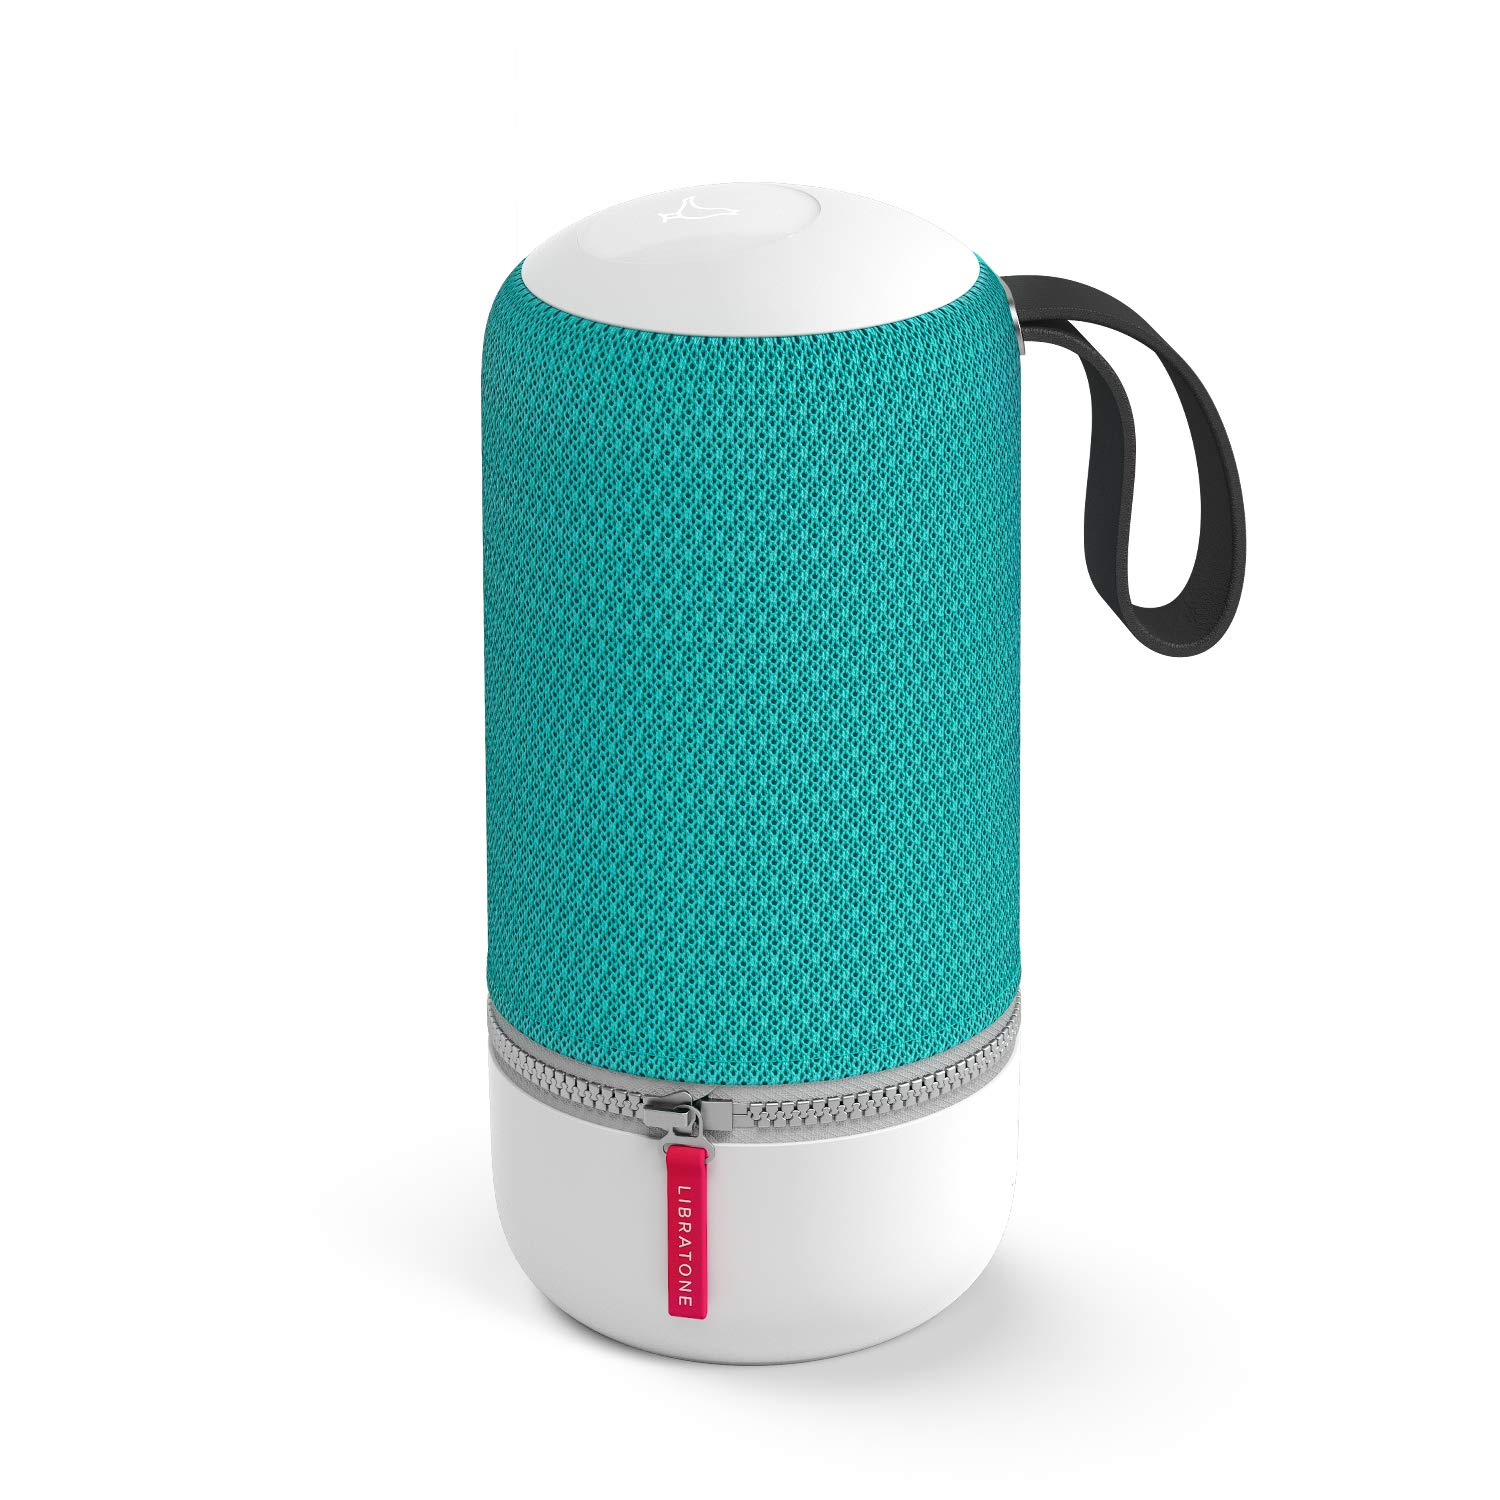 Libratone Zipp Mini 2 Portable Smart Speaker with Amazon Alexa Built-in, Voice Control, Wi-Fi & Bluetooth Connection, 75W Powerful Sound, Multi-Room Music System, 12 Hour Playtime-Pine Green